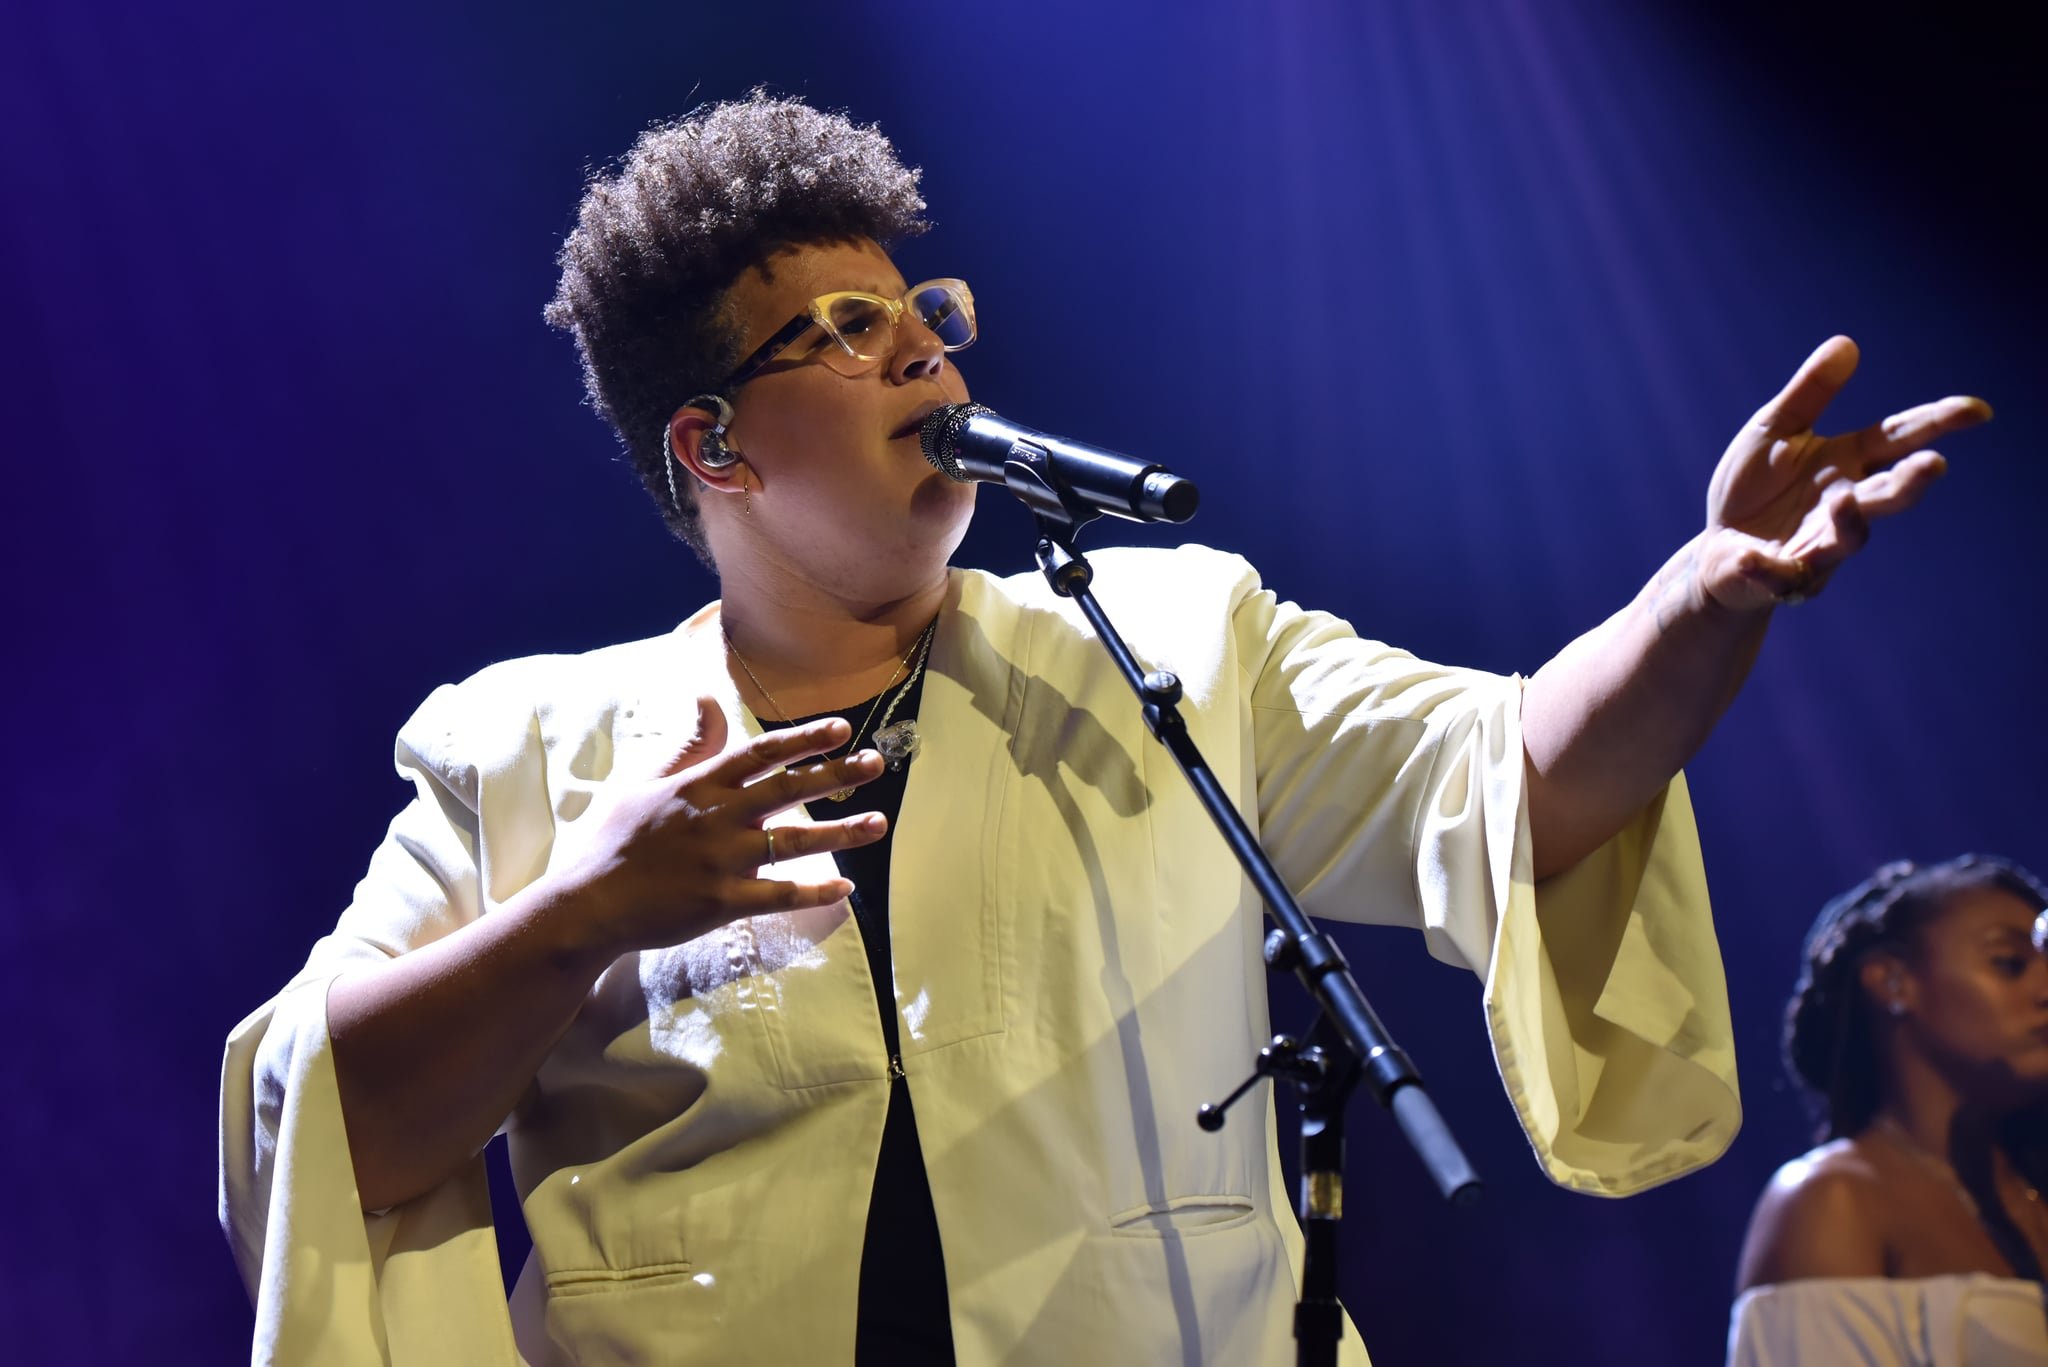 LONDON, ENGLAND - MARCH 10: Brittany Howard performs on stage at the O2 Kentish Town Forum on March 10, 2020 in London, England. (Photo by C Brandon/Redferns)